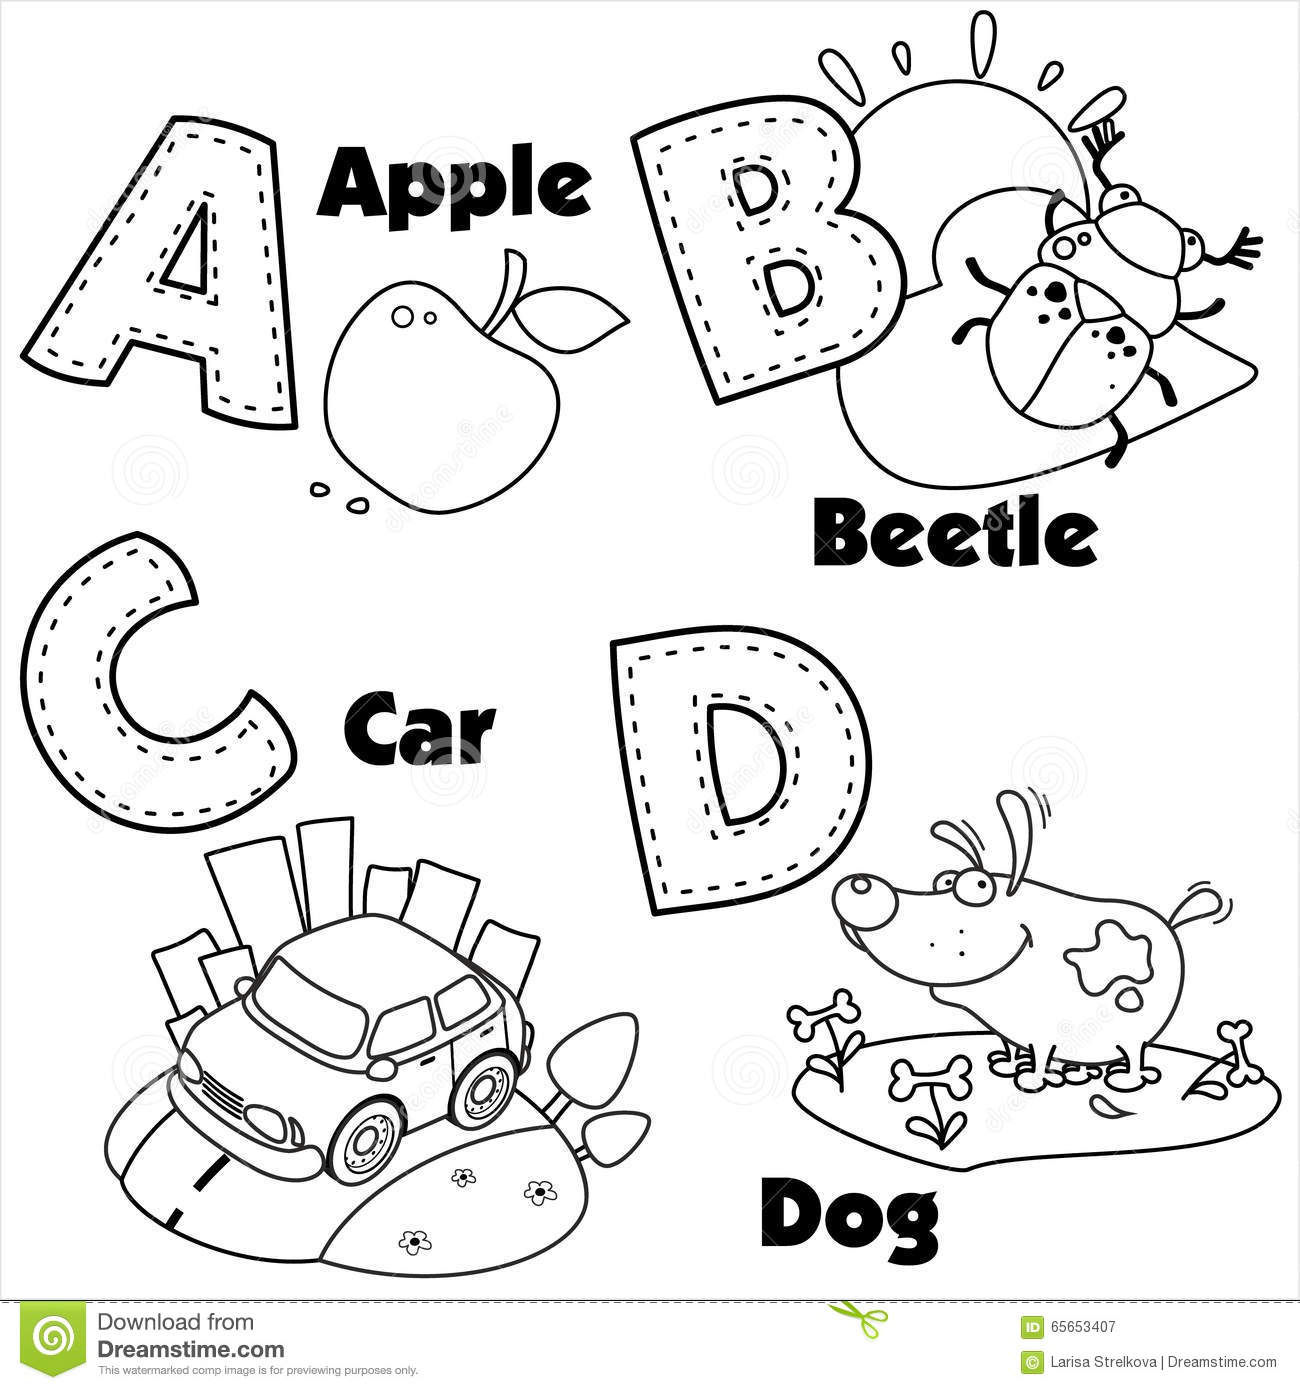 2589 Avocado Coloring Page Free Printable Avocado Cut Out Template as well Letra E as well Hand Template together with Stock Illustration English Alphabet Letters B C D Coloring Pictures Them Image65653407 additionally Seasons Spring. on letter coloring pages for 5